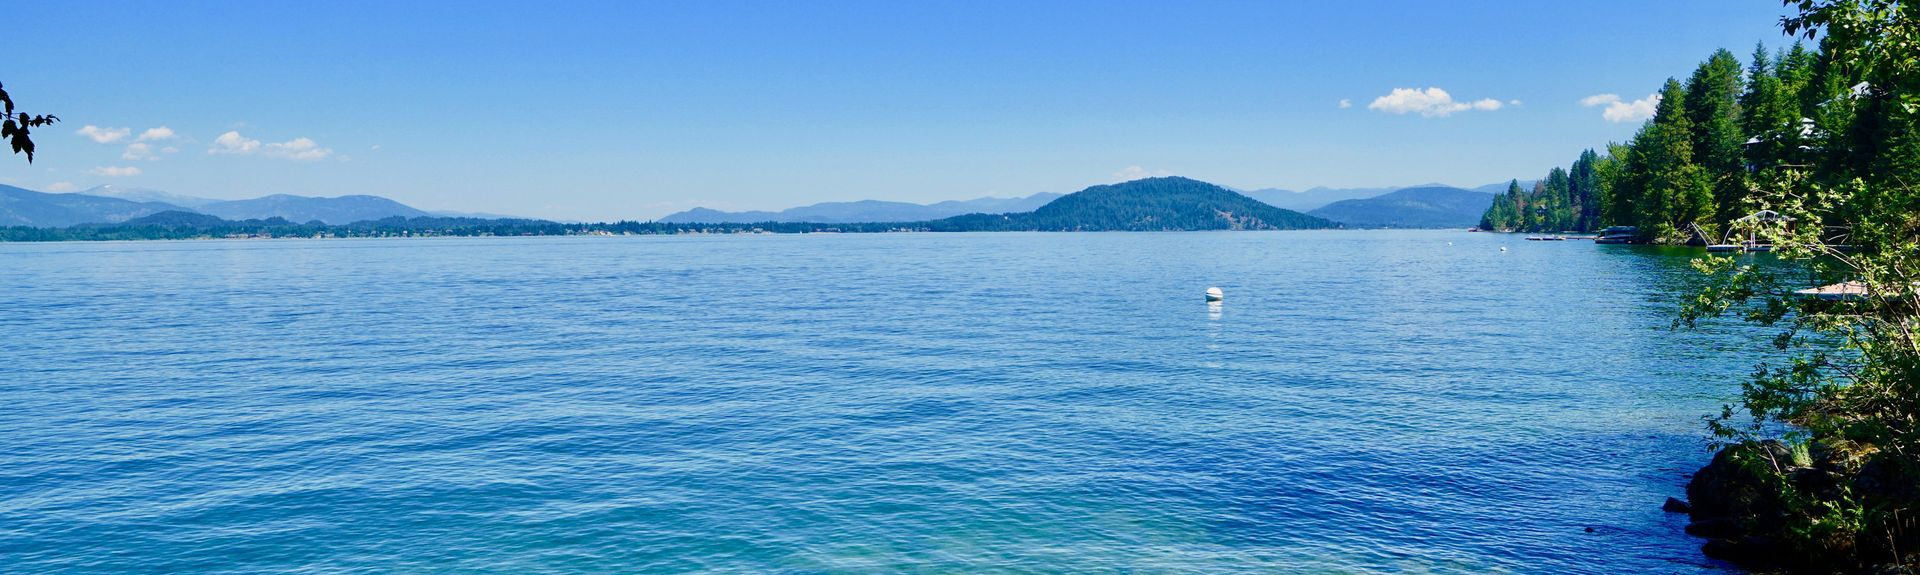 Lakeview Park, Sandpoint, ID, USA